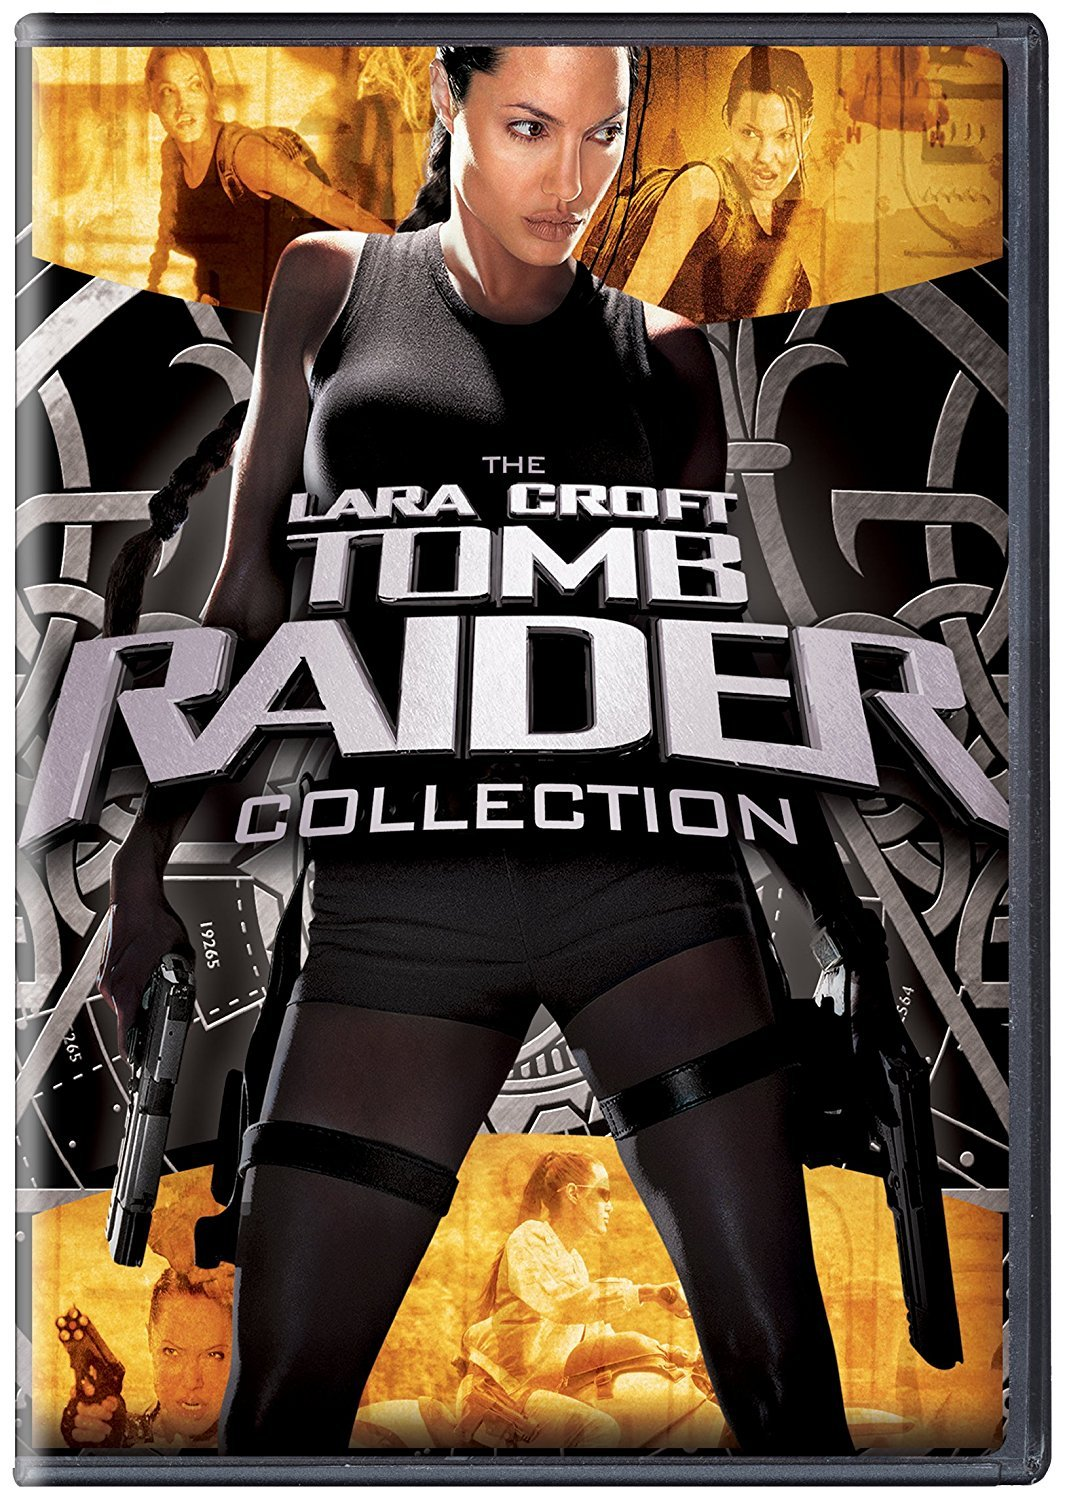 The Lara Croft Tomb Raider Collection Tomb Raider Tomb Raider